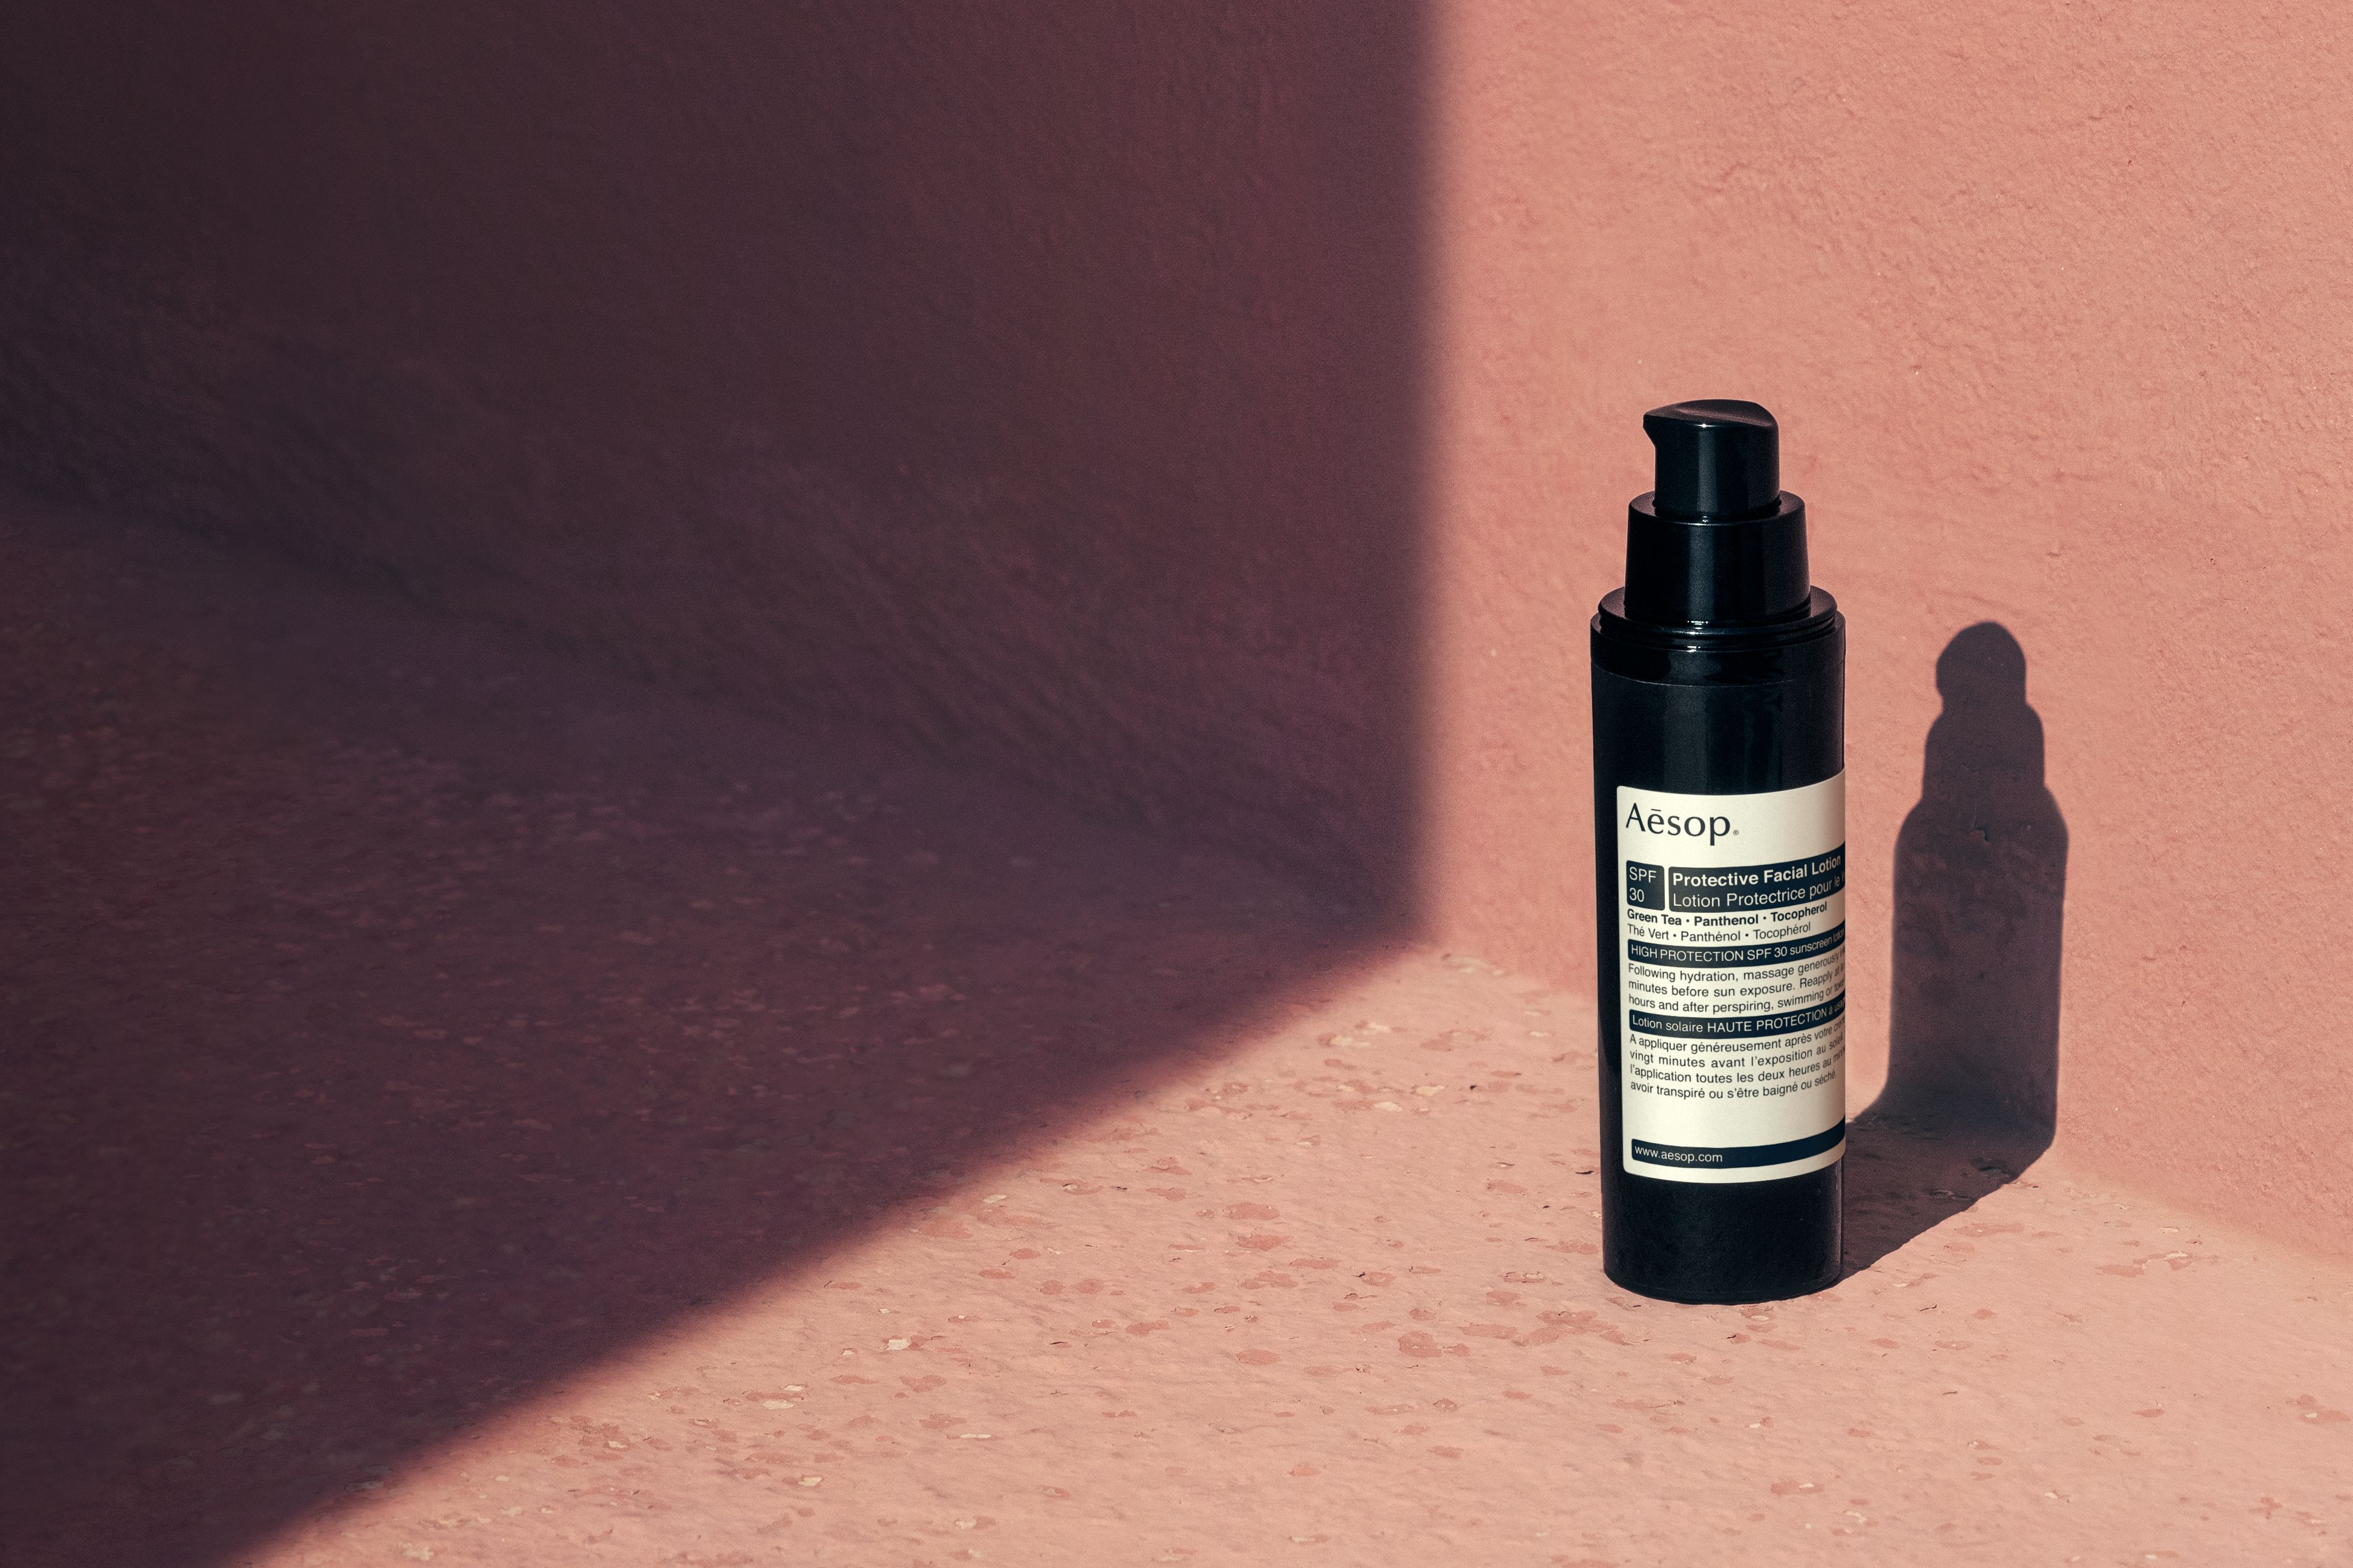 Aesop Bust Our SPF Skincare Myths in One-On-One Workshop